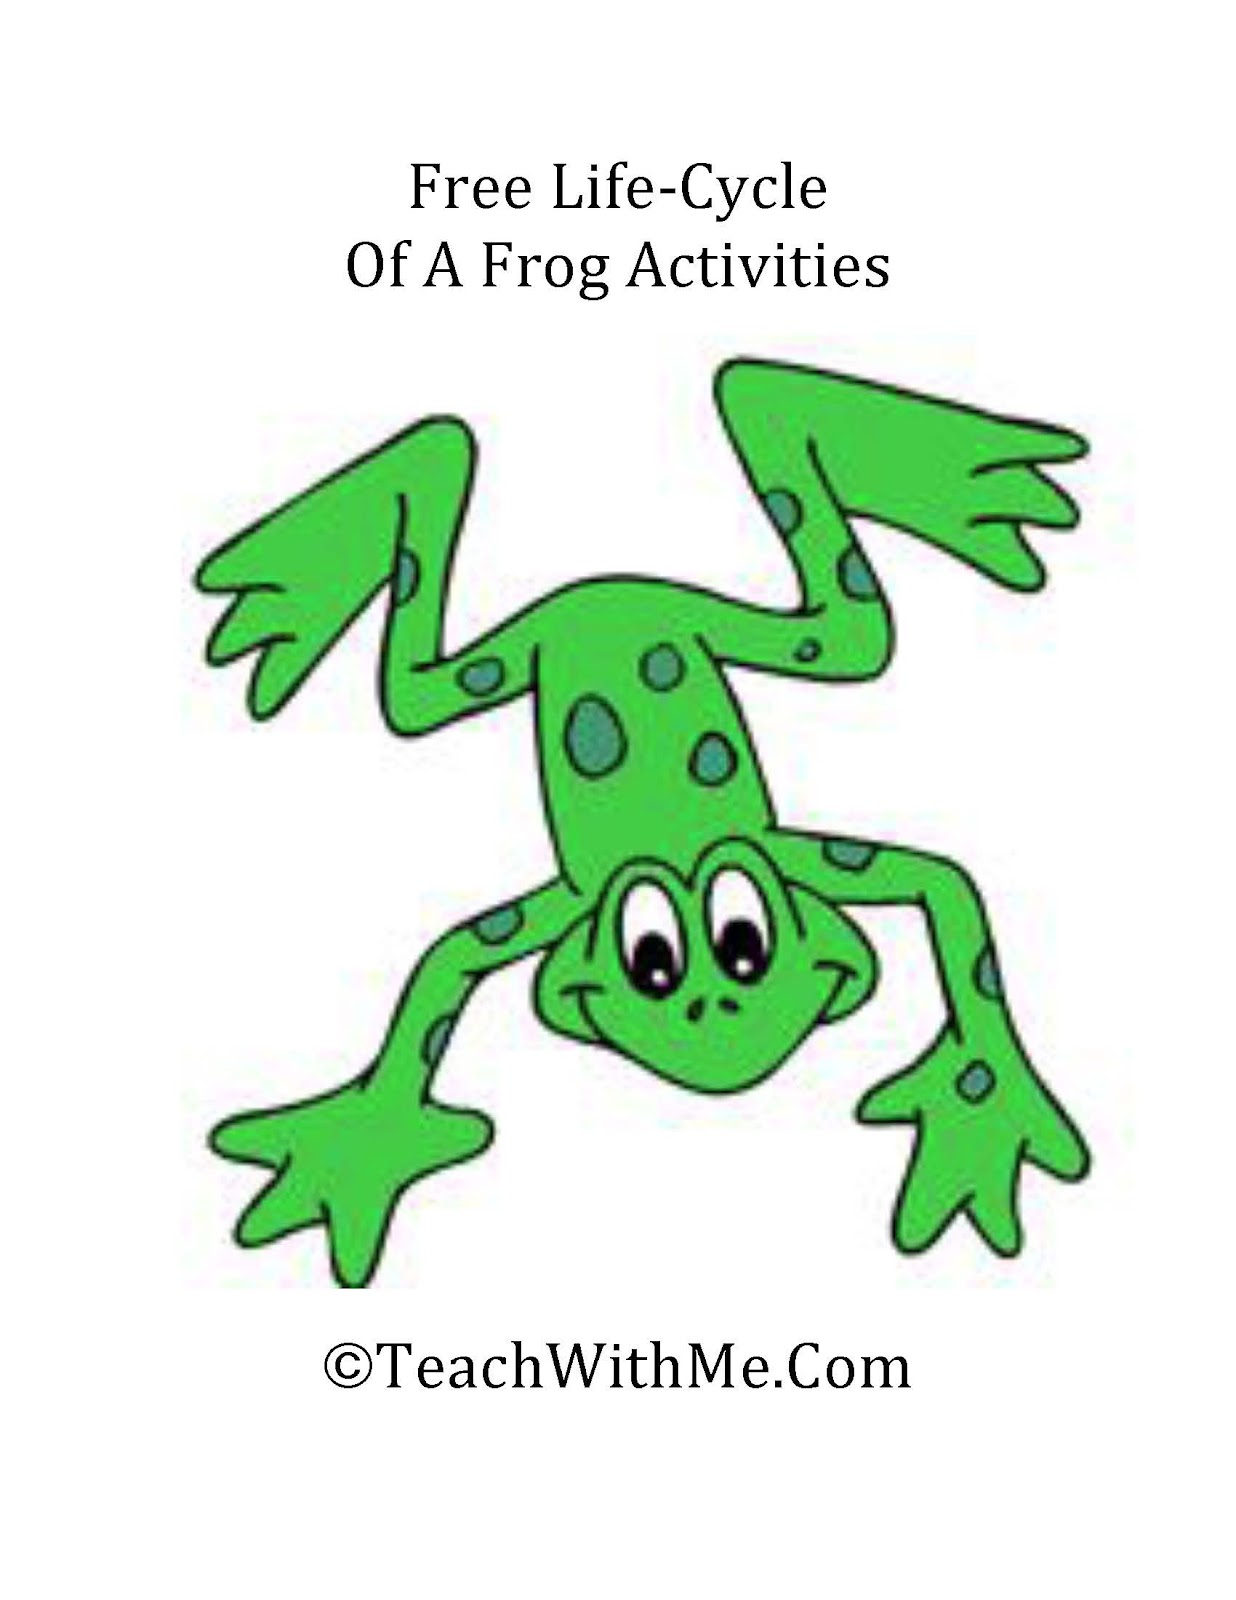 cycle of a frog See a rich collection of stock images, vectors, or photos for frog life cycle you can buy on shutterstock explore quality images, photos, art & more.